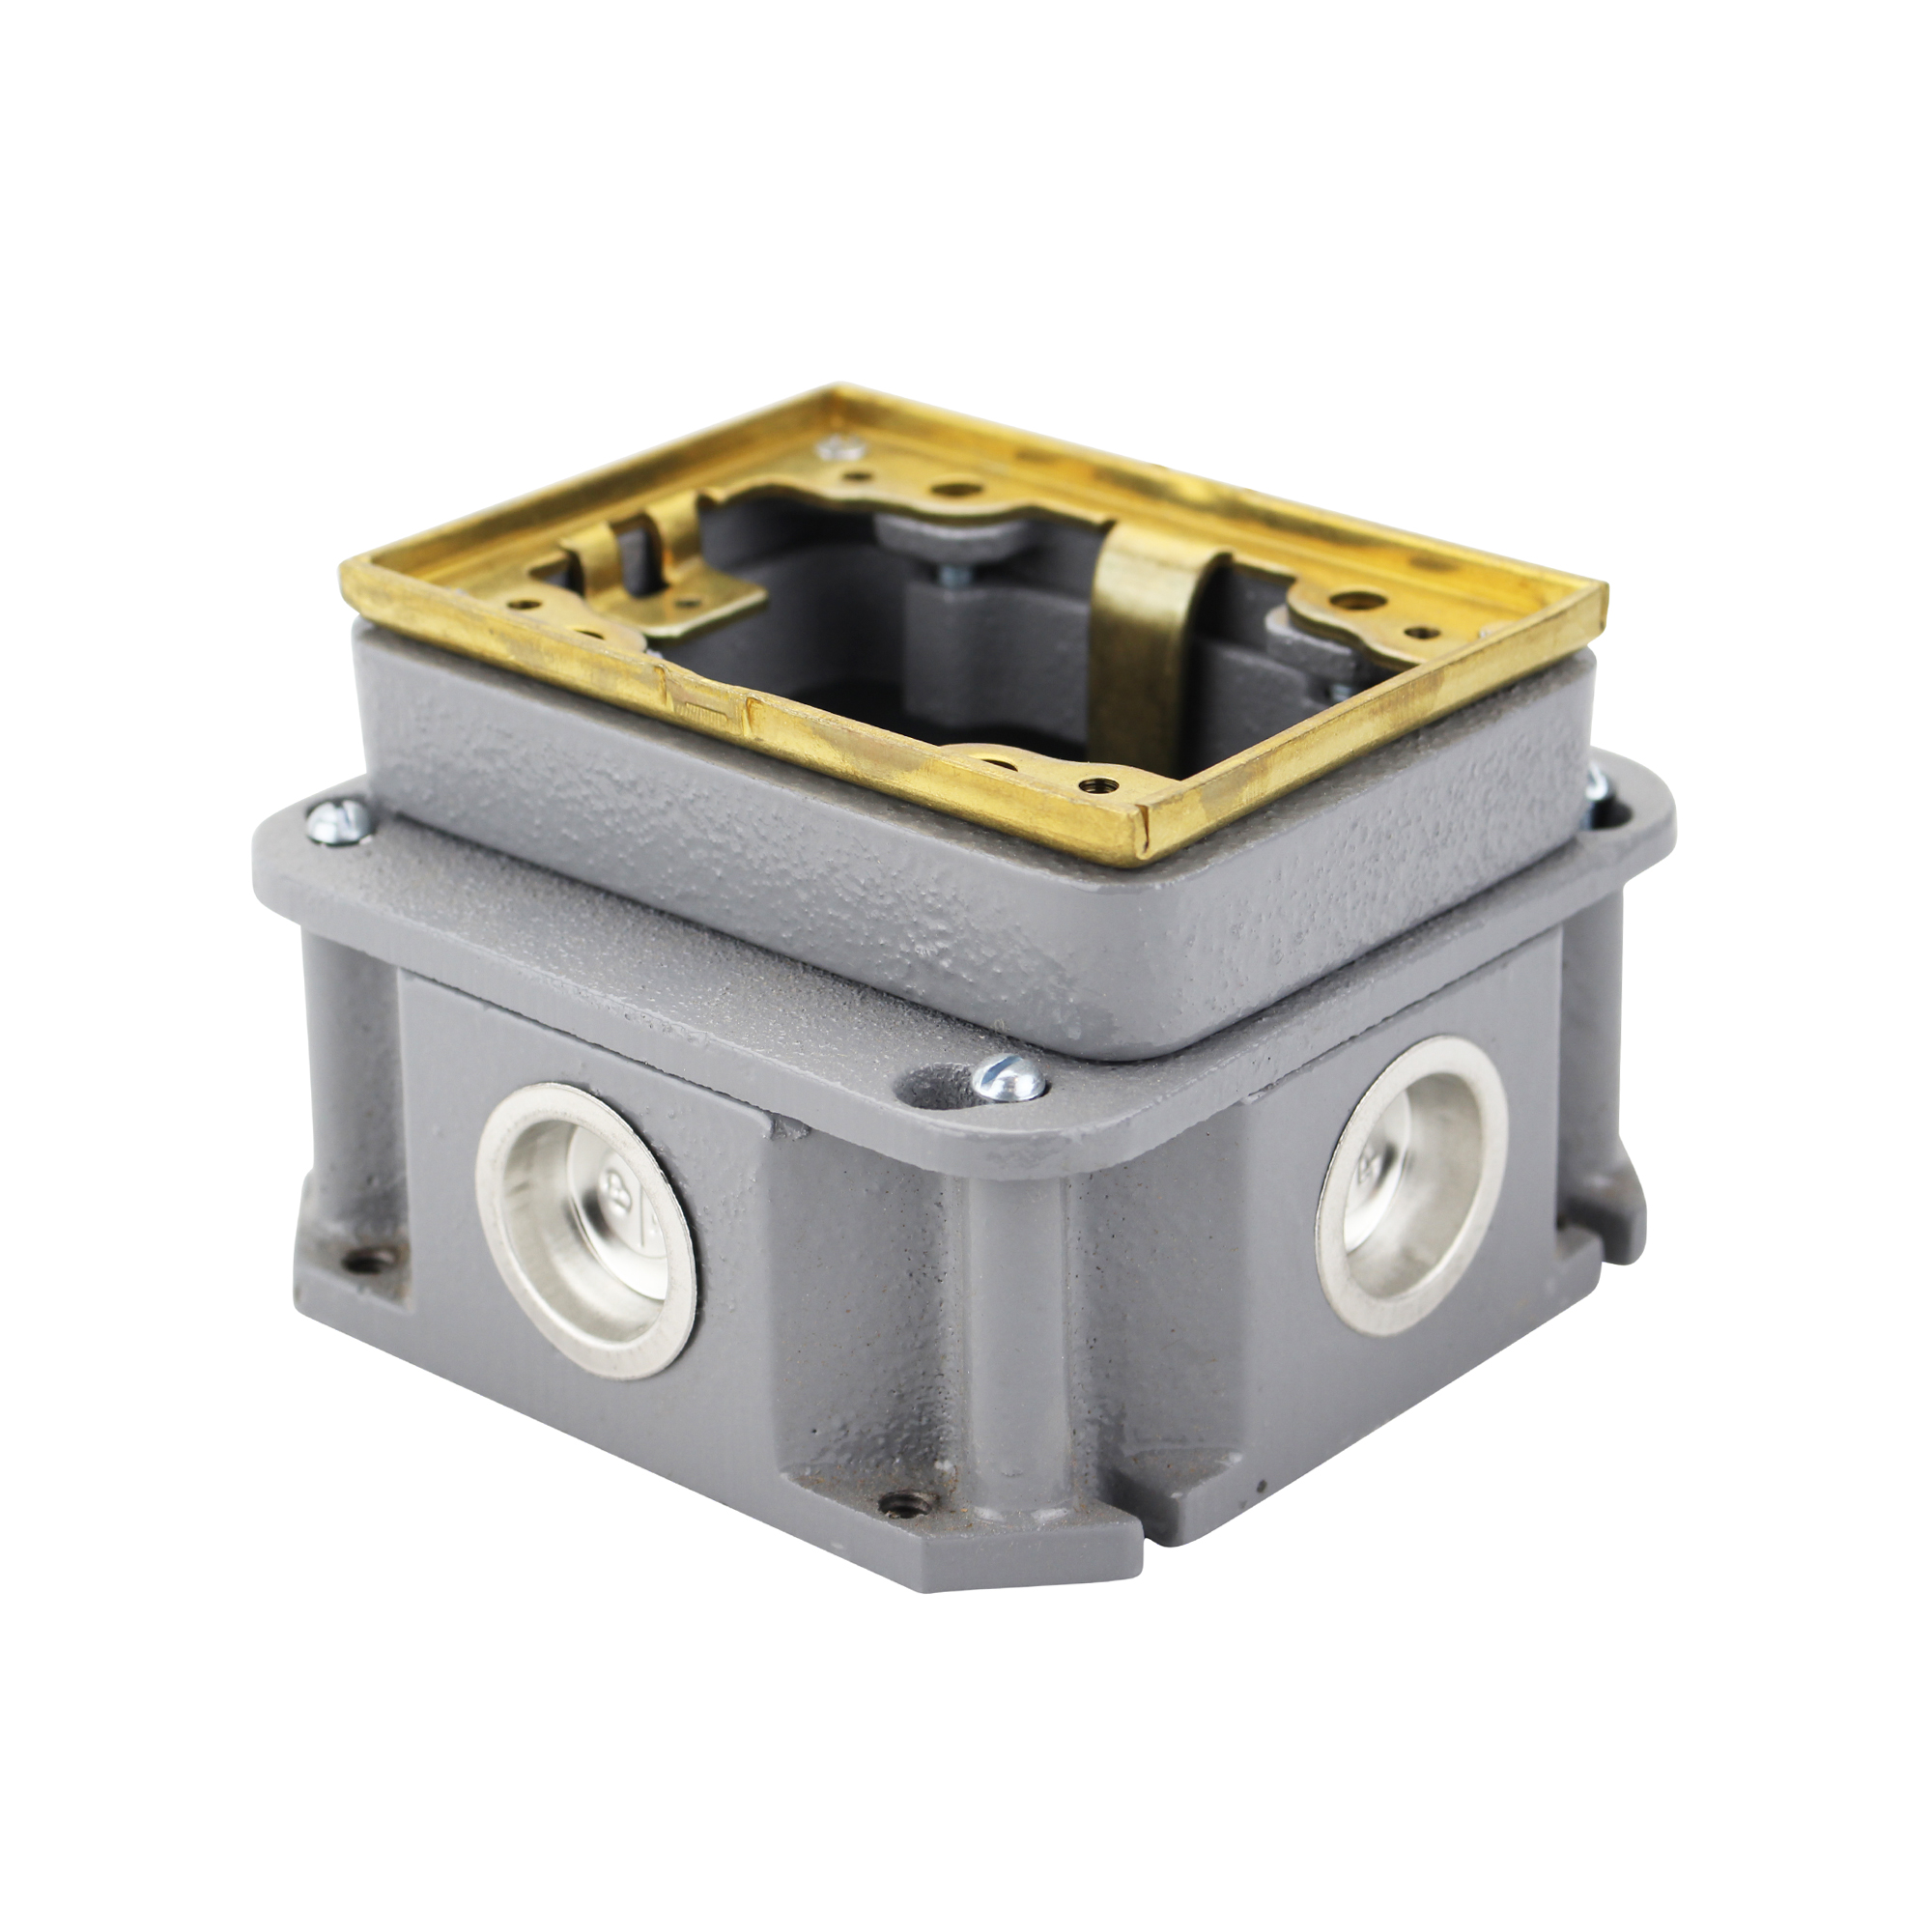 brass receptacles receptacle box wood outlet duplex cover floors for w nema floor ea buy commercial online hinged decorator grade hubbell electrical